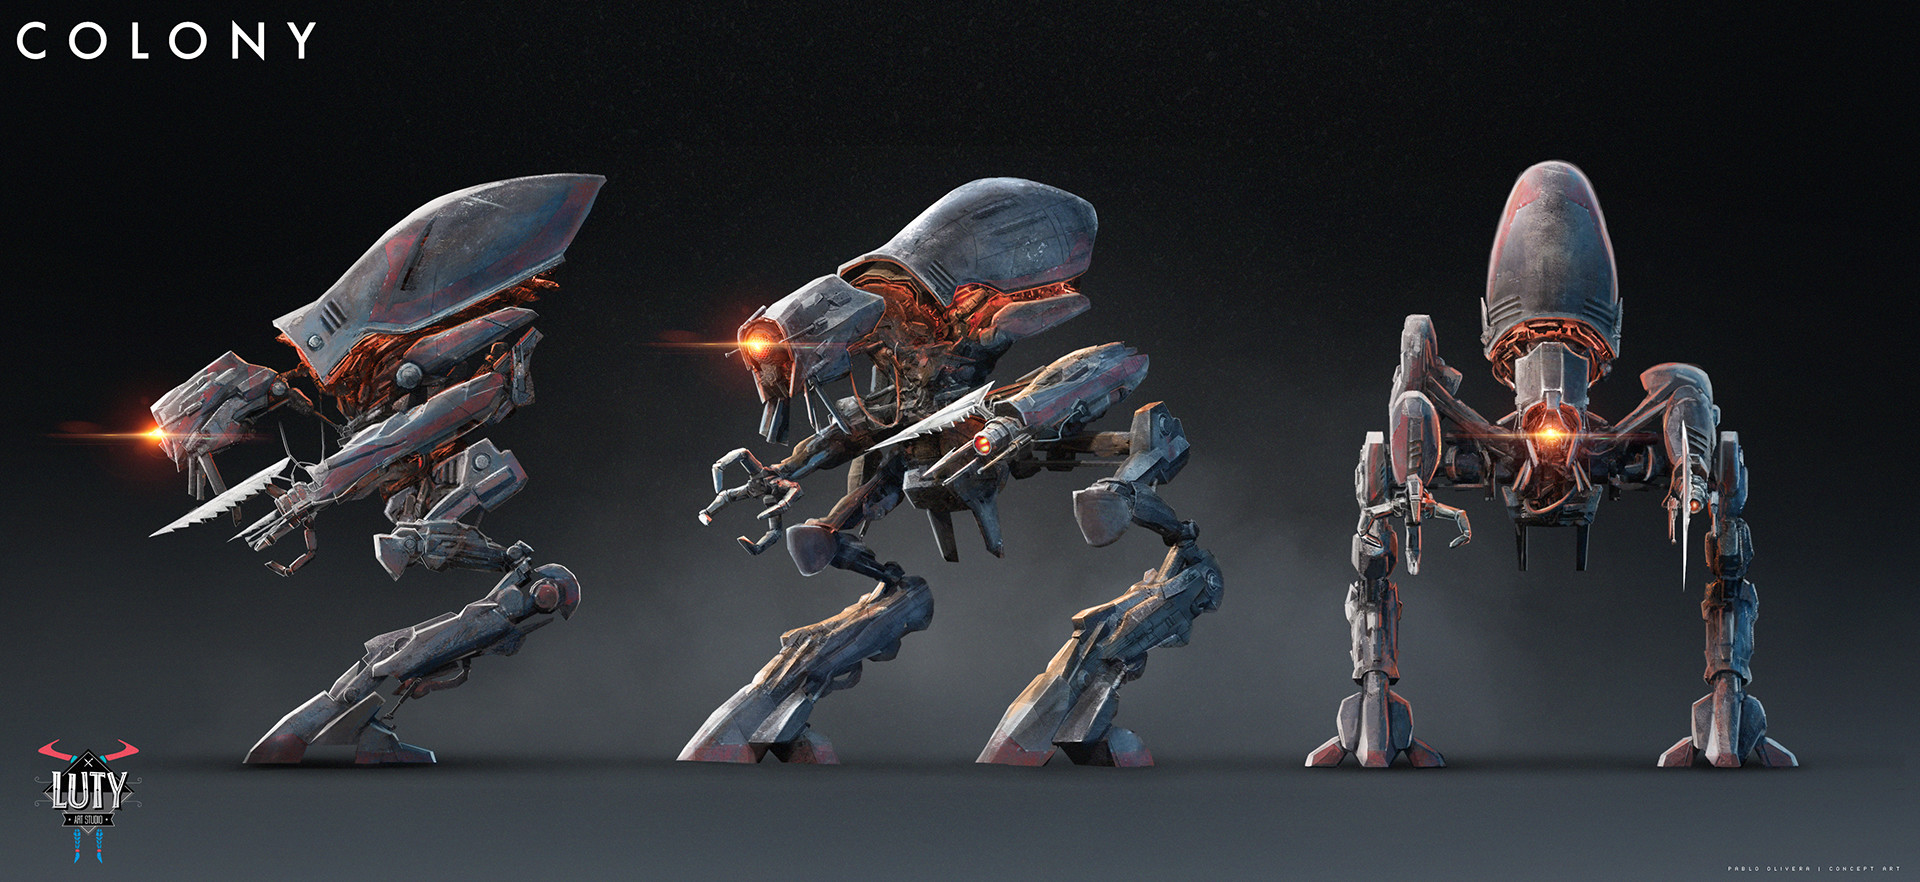 Concept previs ( Zbrush model + photoshop textures)